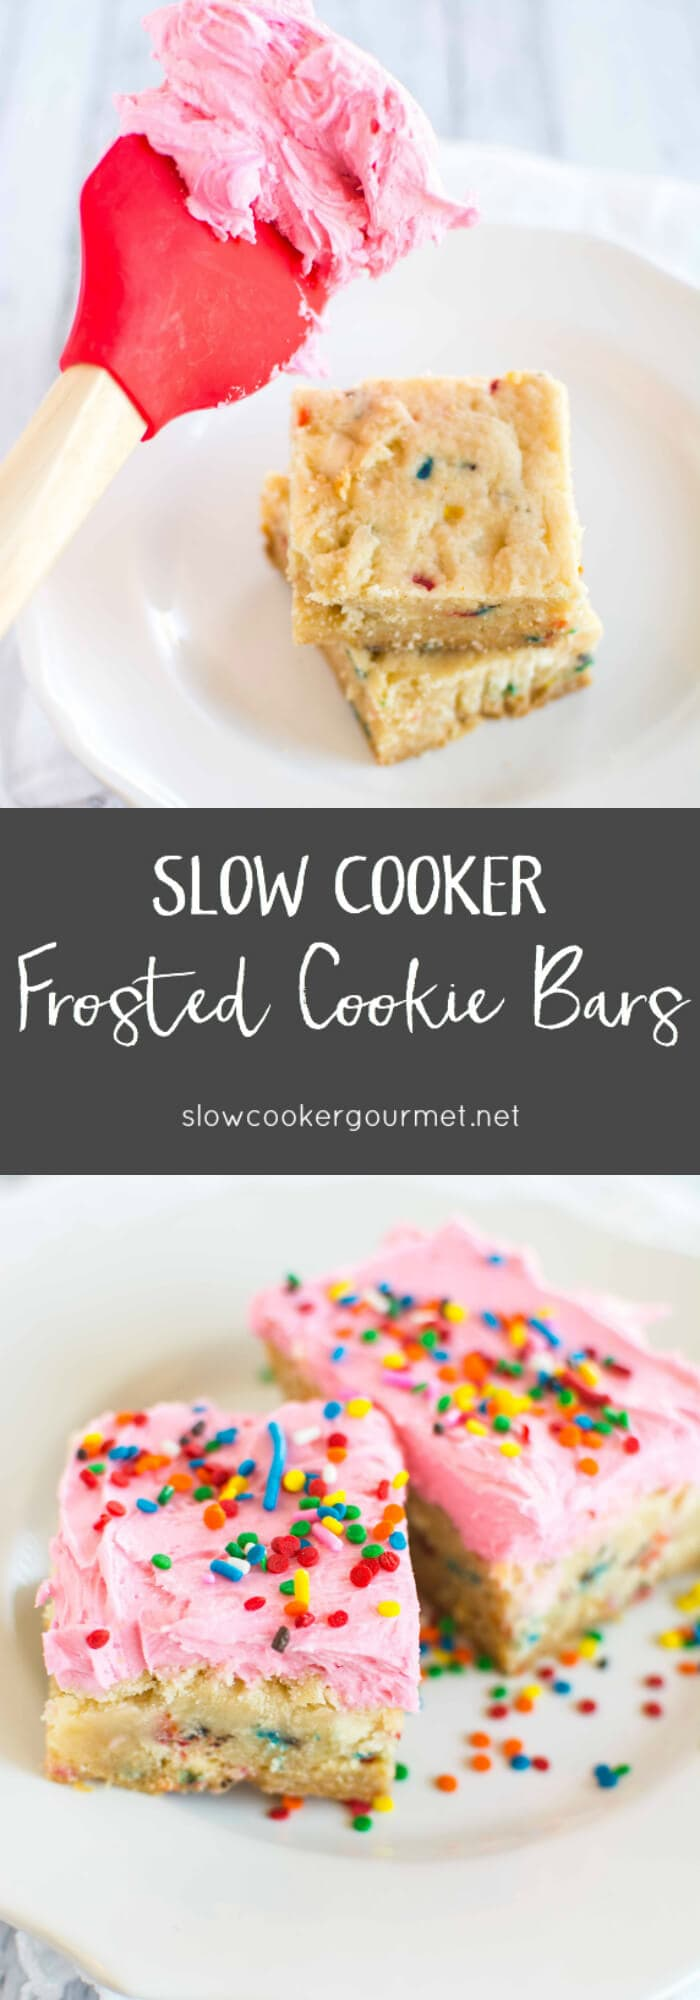 Slow Cooker Frosted Cookie Bars